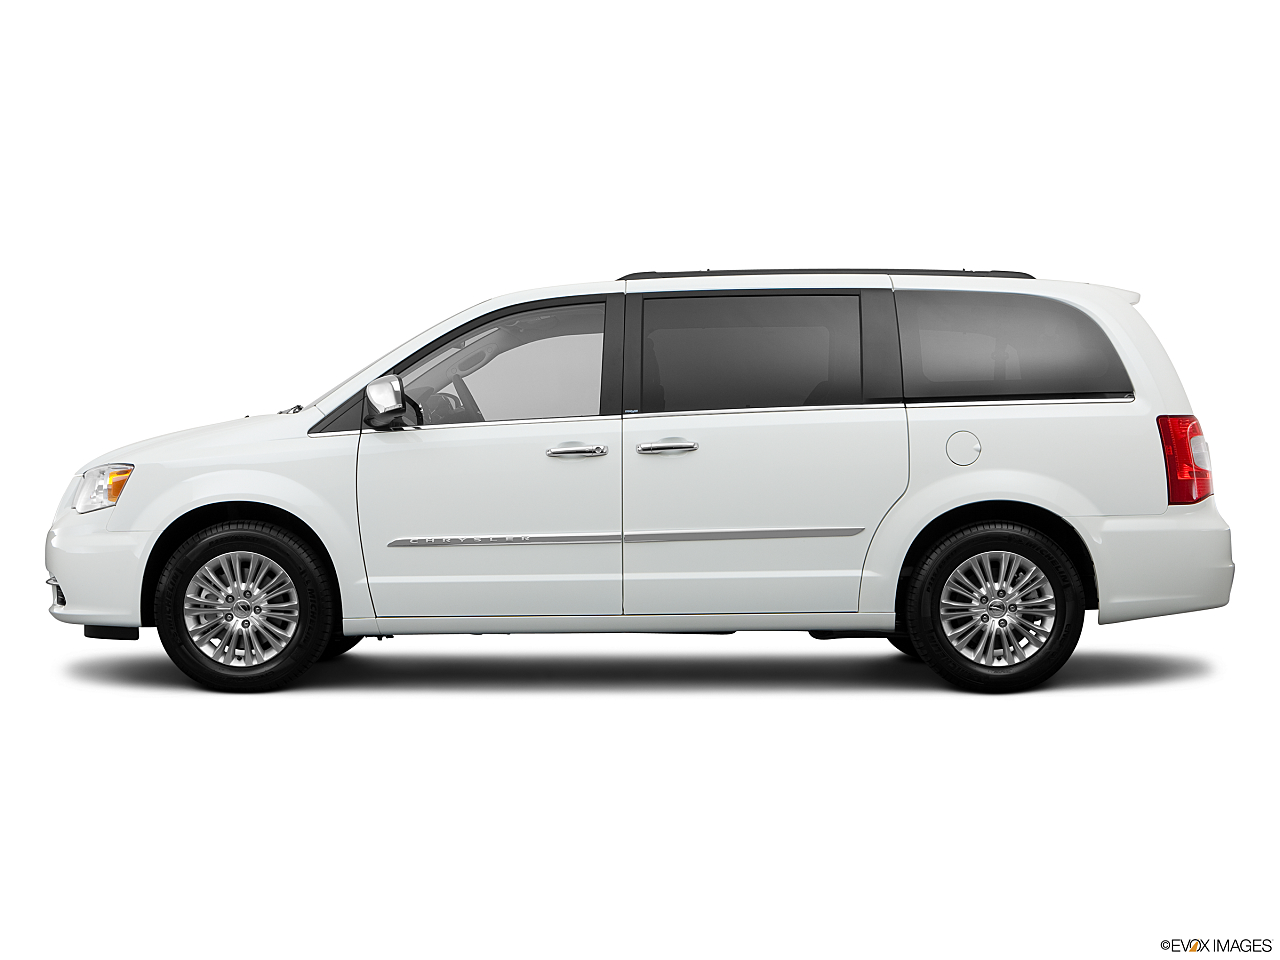 2013 chrysler town and country touring at bill owens auto sales of avon park fl research. Black Bedroom Furniture Sets. Home Design Ideas